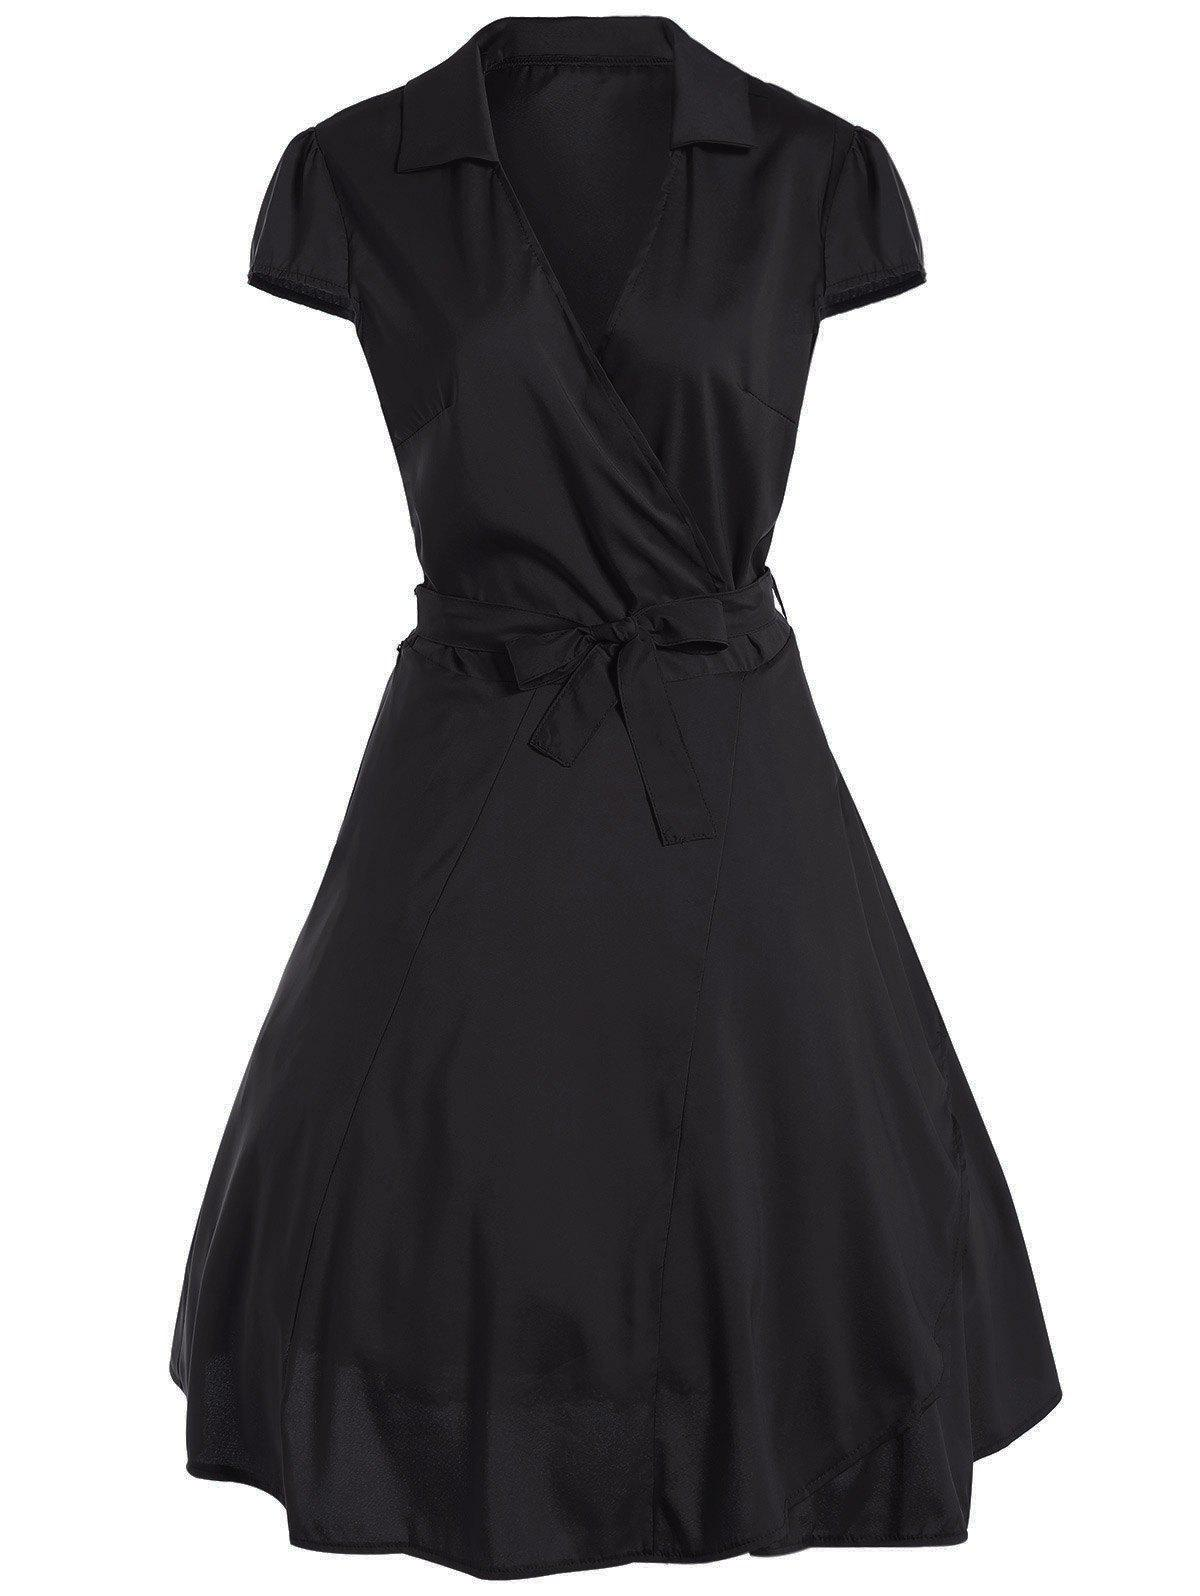 V Neck Tied Belt Surplice Skater DressWOMEN<br><br>Size: L; Color: BLACK; Style: Vintage; Material: Cotton Blend,Polyester; Silhouette: A-Line; Dresses Length: Knee-Length; Neckline: V-Neck; Sleeve Length: Short Sleeves; Pattern Type: Solid; With Belt: Yes; Season: Fall,Spring,Summer; Weight: 0.261kg; Package Contents: 1 x Dress  1 x Belt;